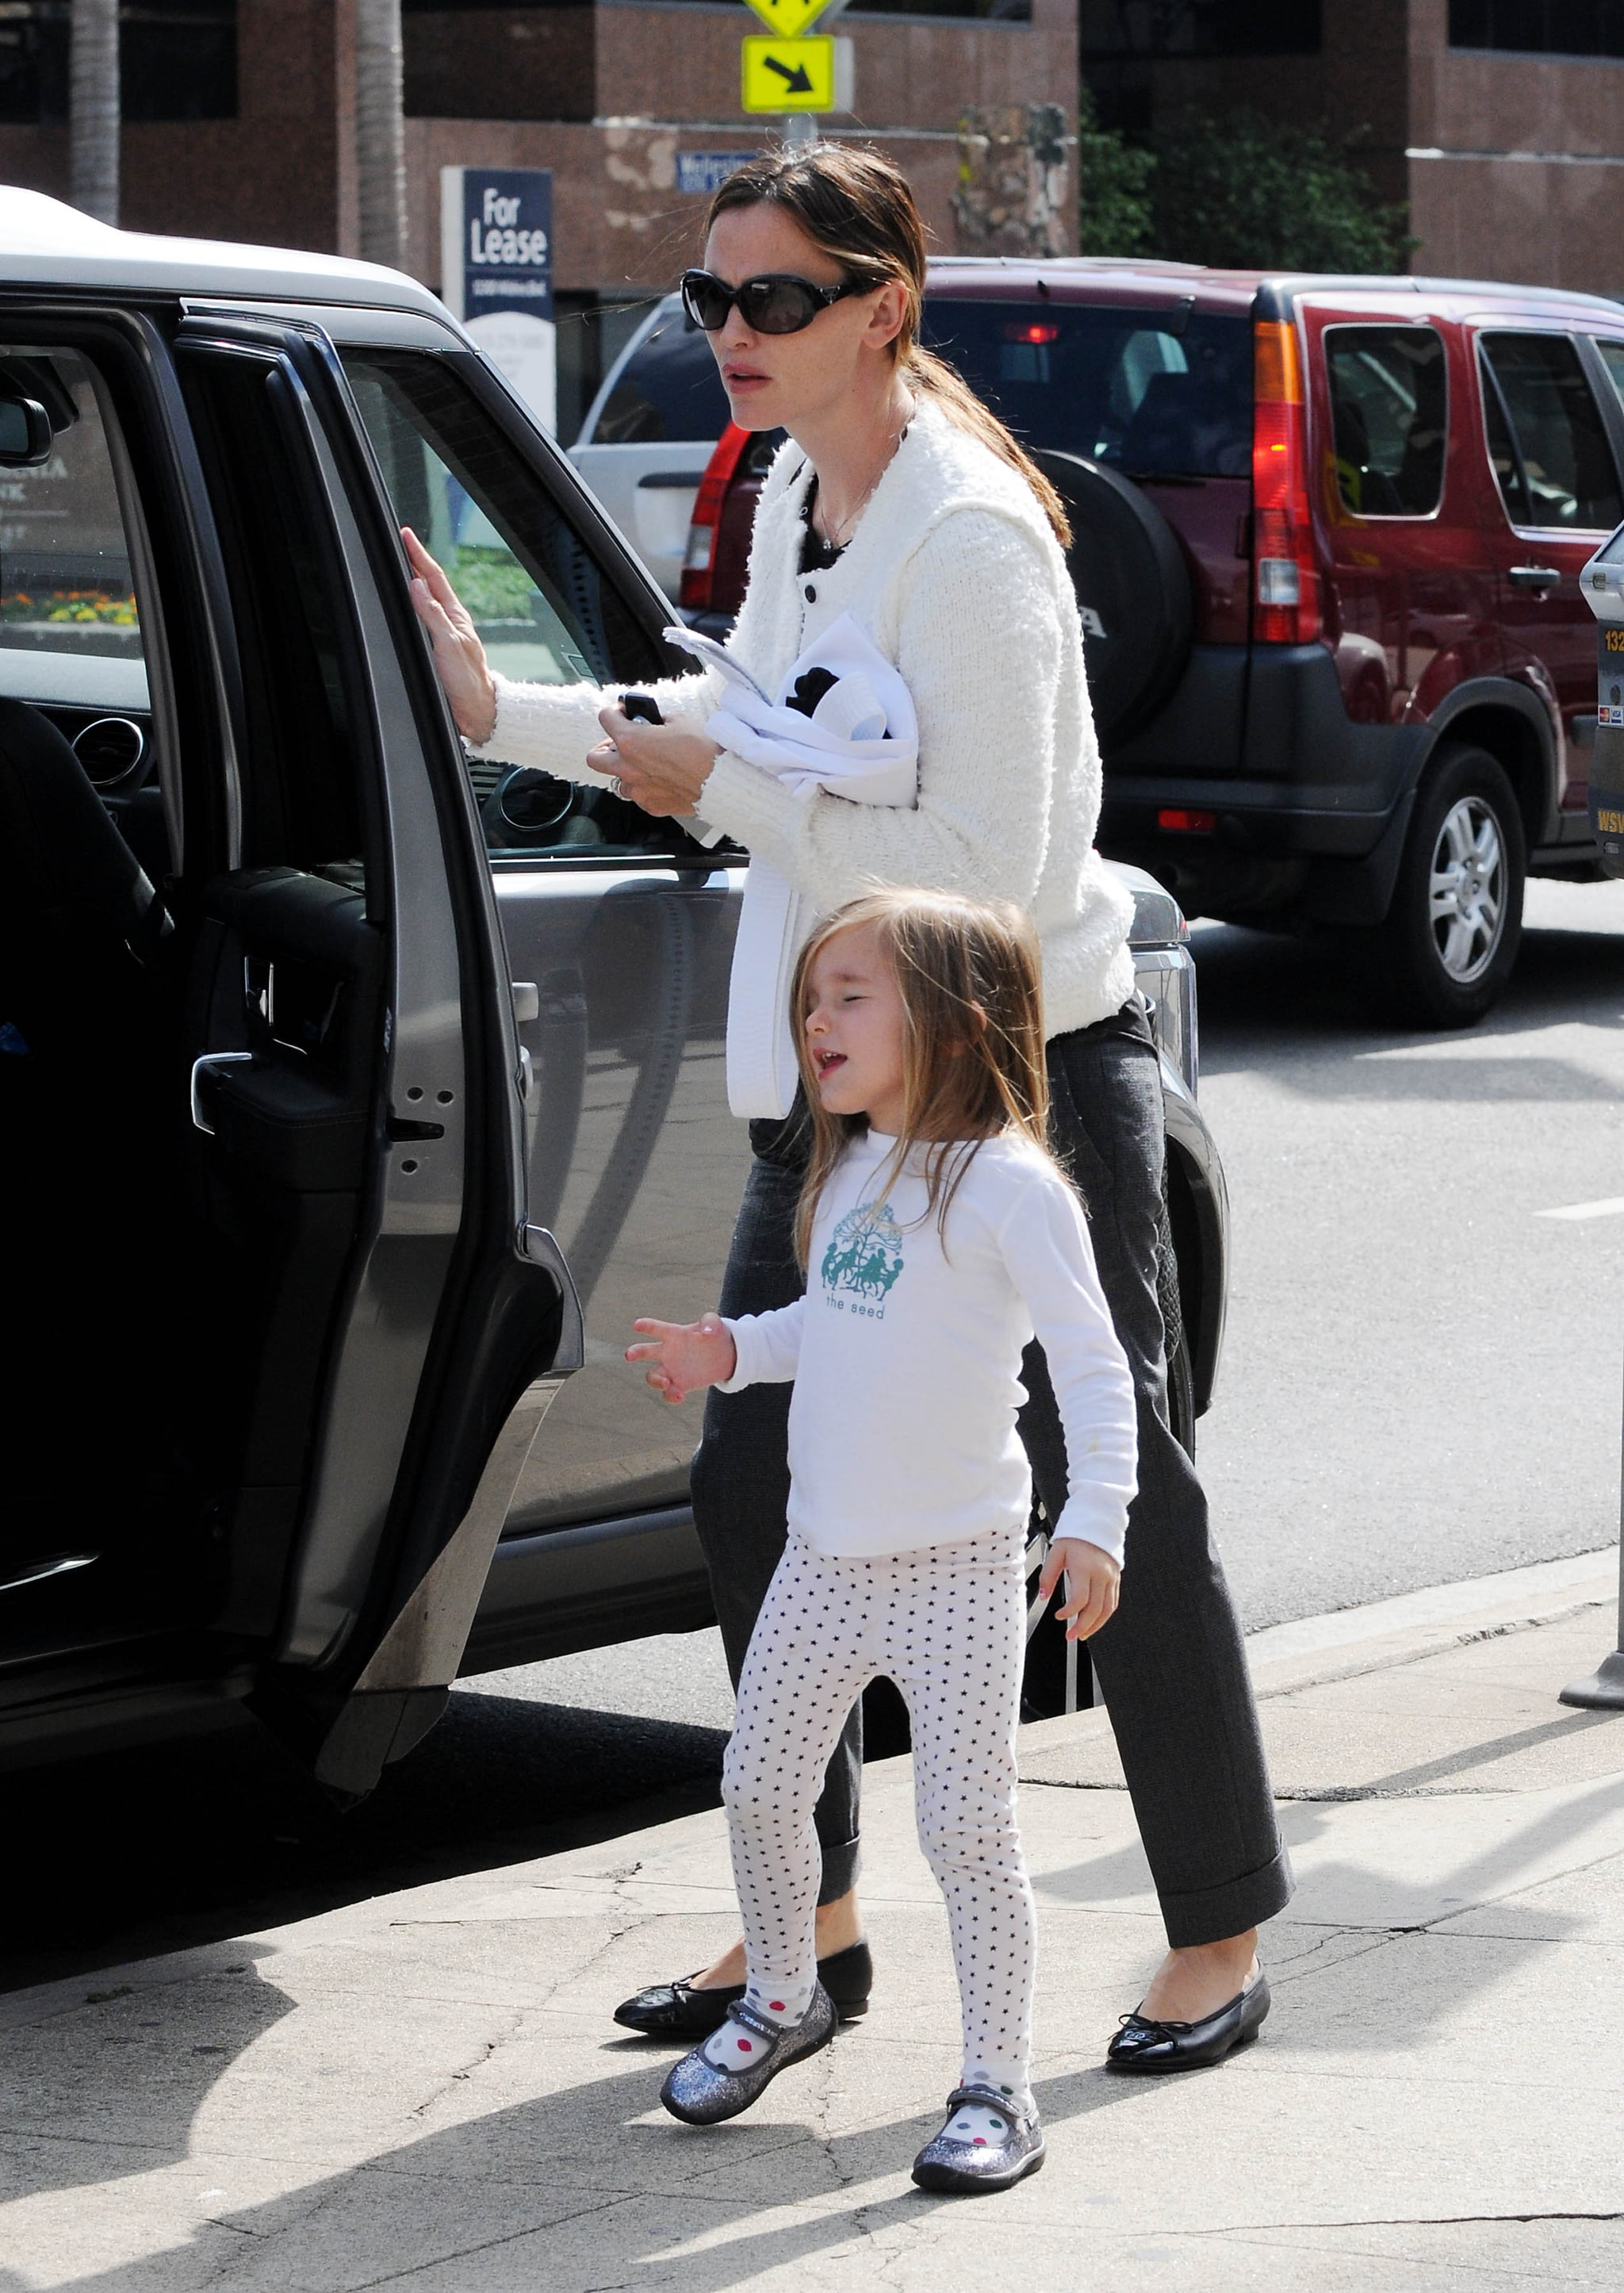 Jennifer Garner and Seraphina Affleck hopped out of their car.